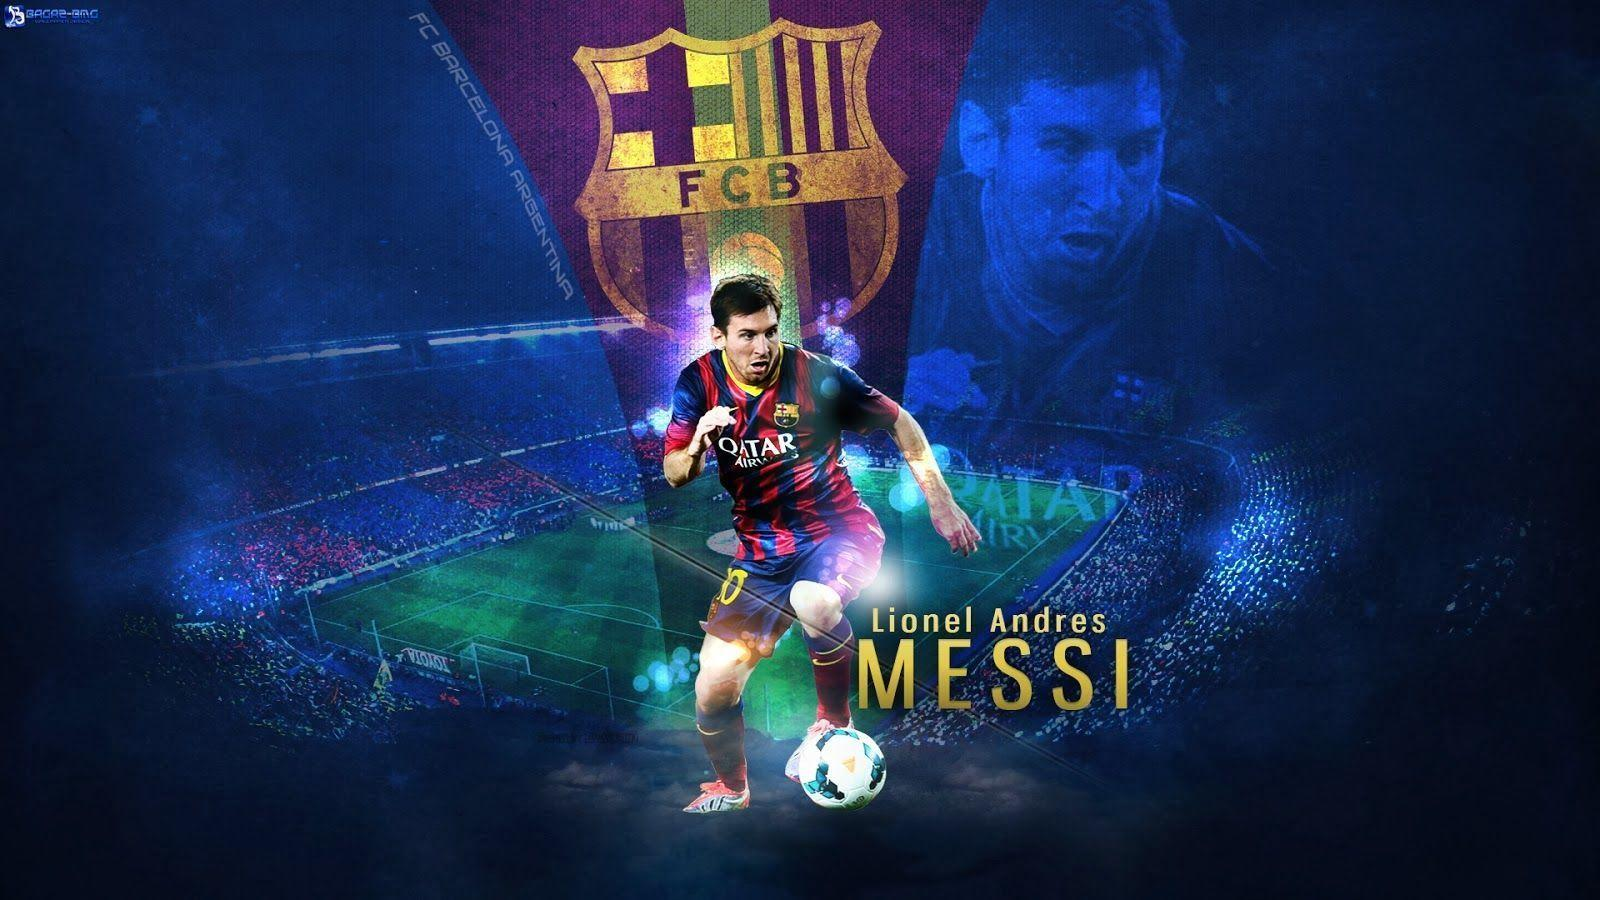 fEgZJU6 in addition 1200px Minist C3 A8re des Sports svg as well 1462716432 083475 1462716545 album normal furthermore 266px Lionel Messi 20180626 moreover 4228 taissa farmiga as well GettyImages 635481116 as well Lionel Messi HD Wallpaper 5 additionally 6431493073452 coeficiente intelectual further GettyImages 2673079 also PA 32912061 in addition doig. on Lionel